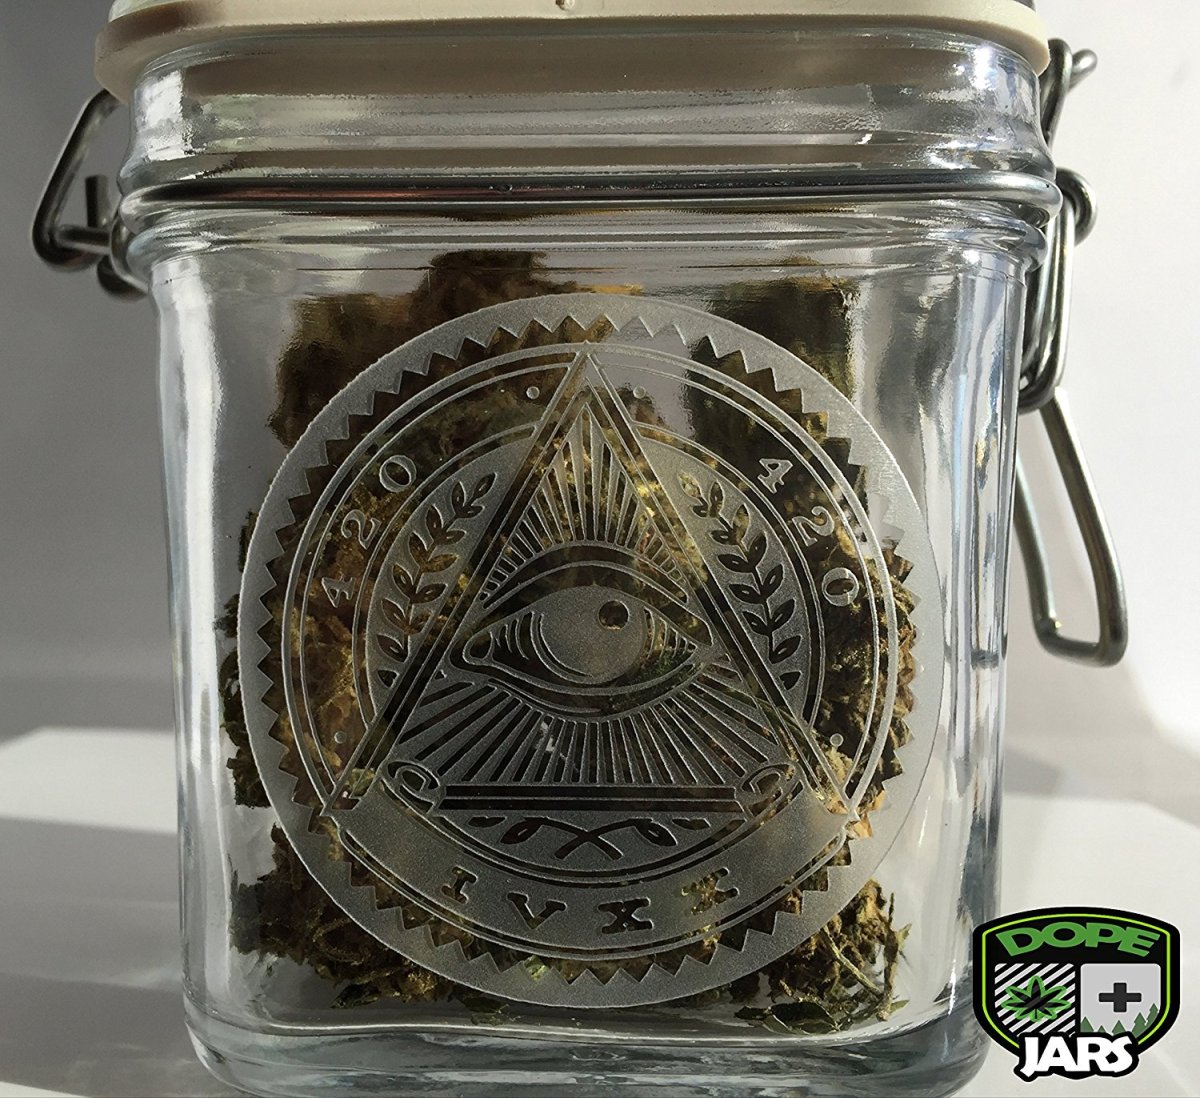 Dope Jars® Swing Top Stash Jar